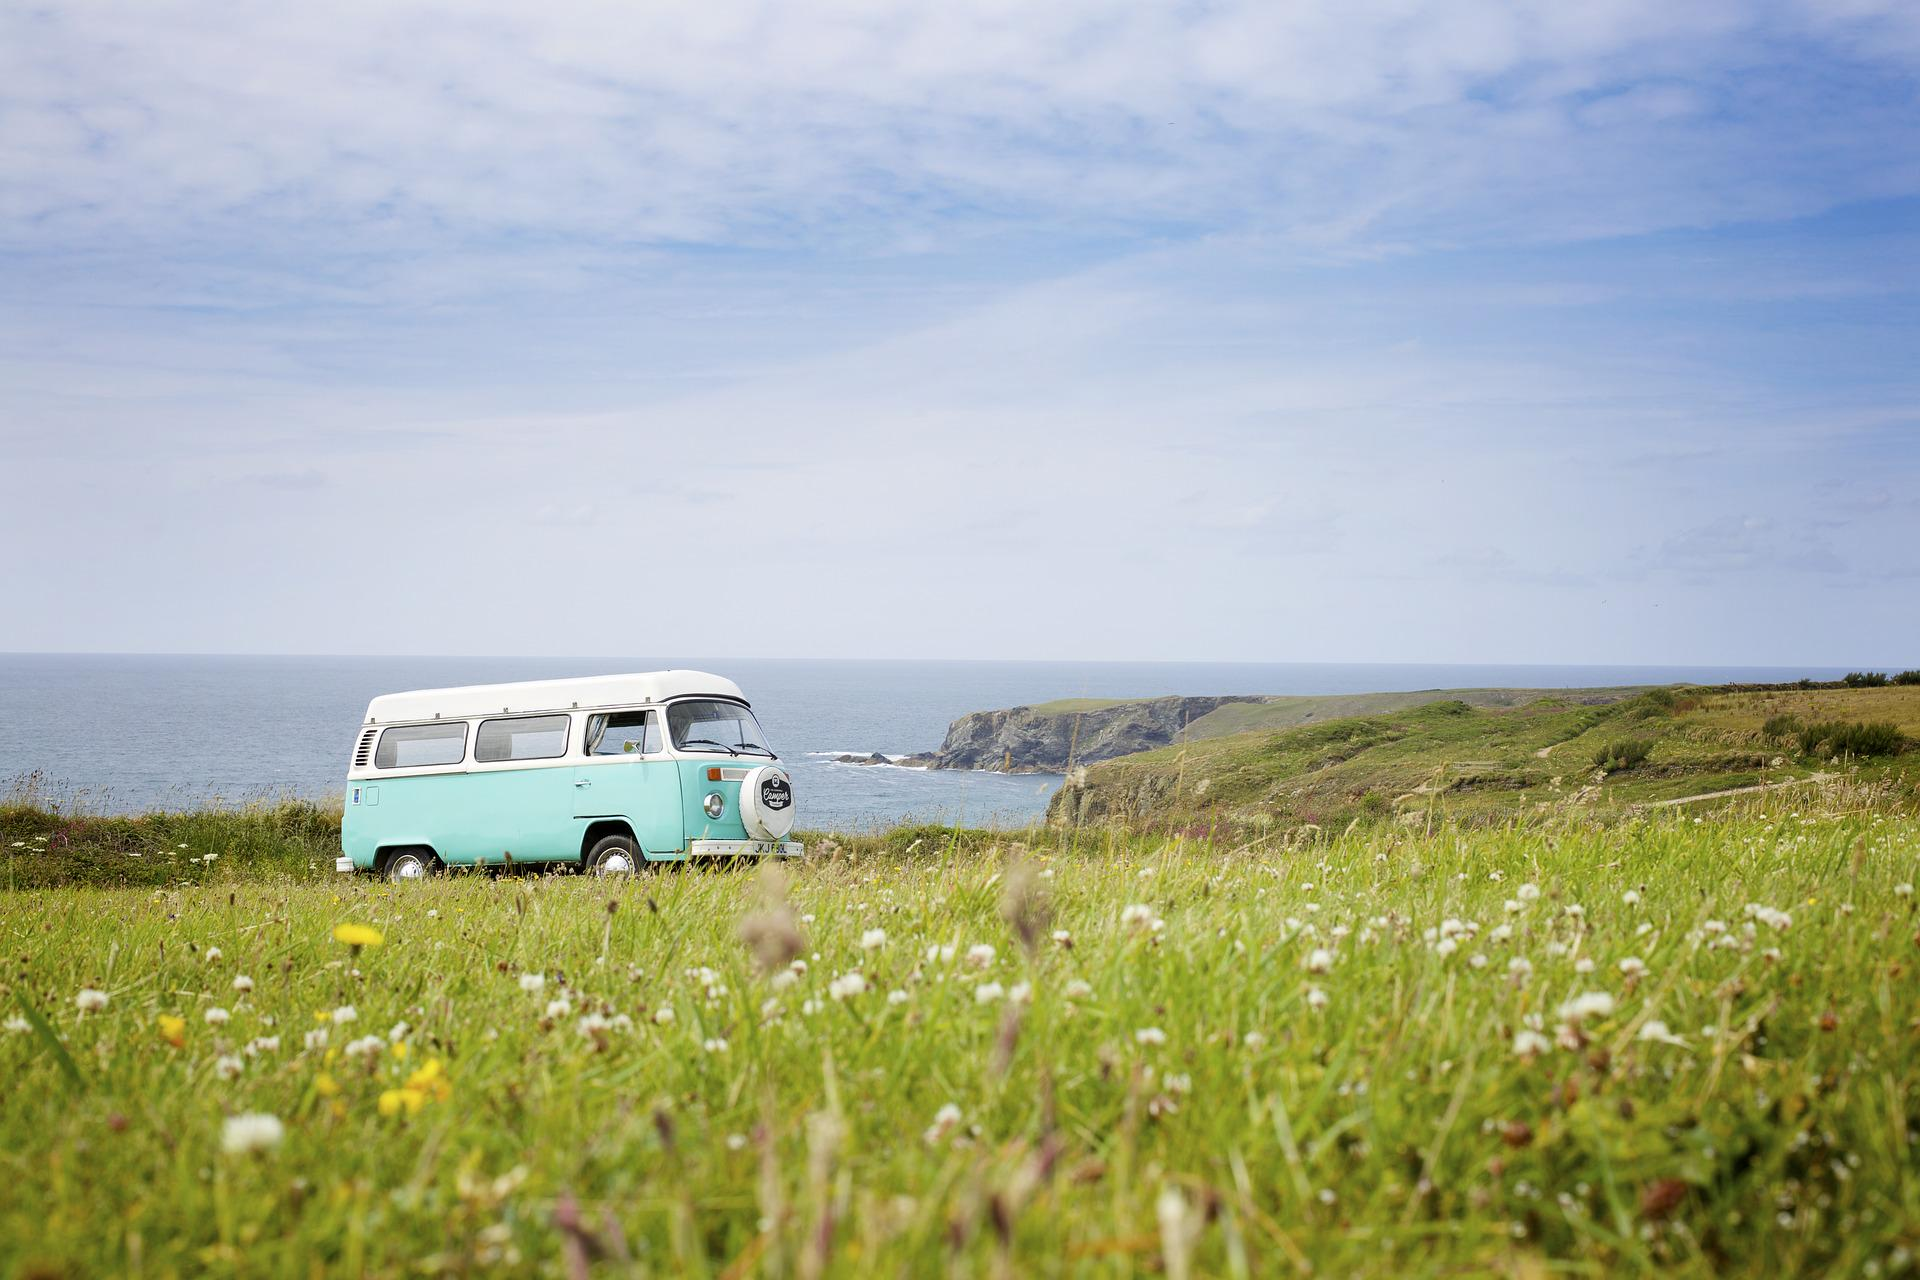 Campervan Hire | The best Campervan, RV or Motorhome for your